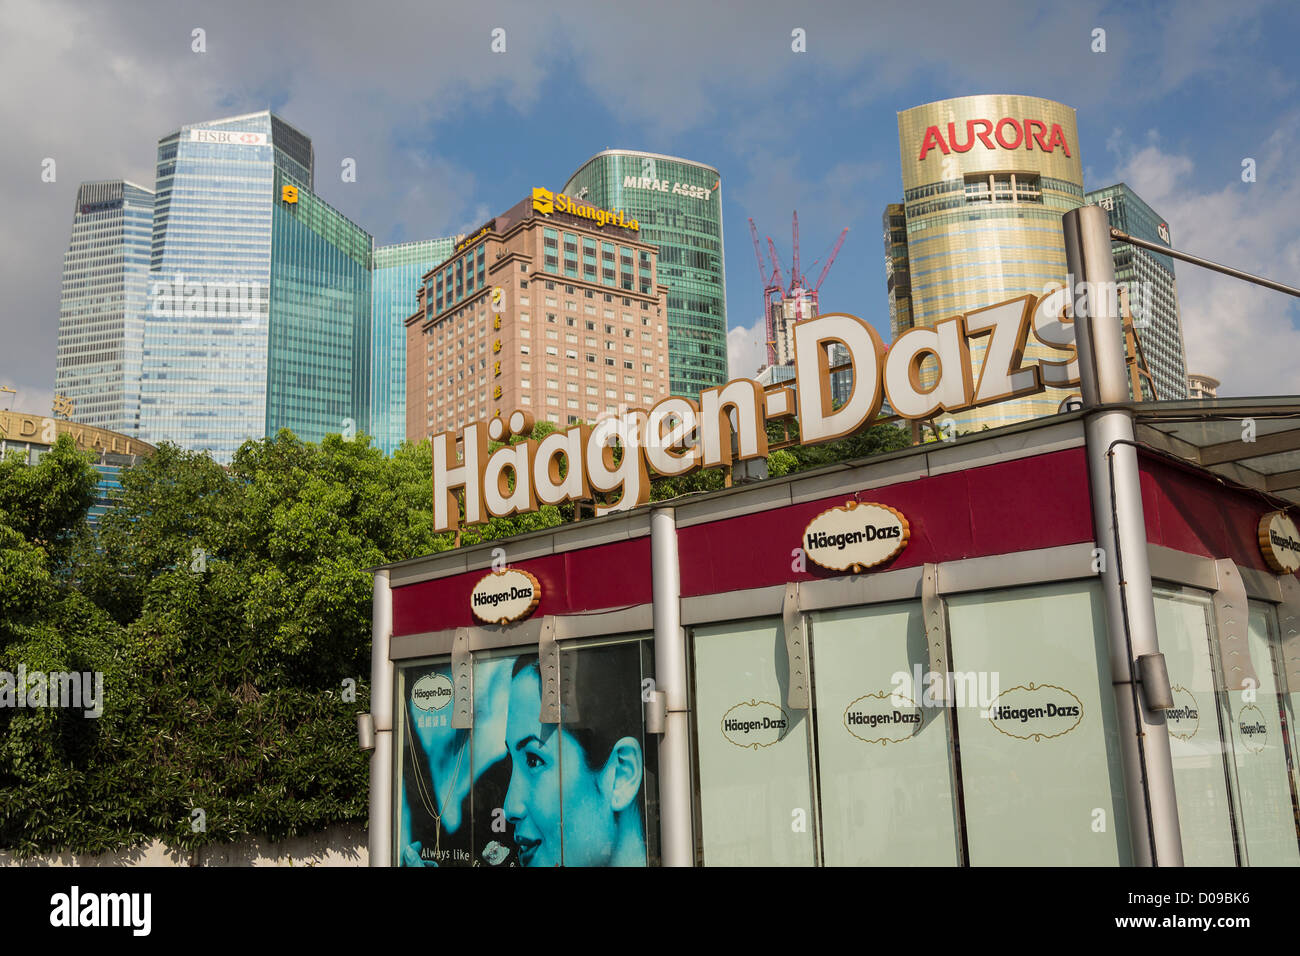 A Haagen Daz ice cream kiosk in Pudong, Shanghai, China - Stock Image